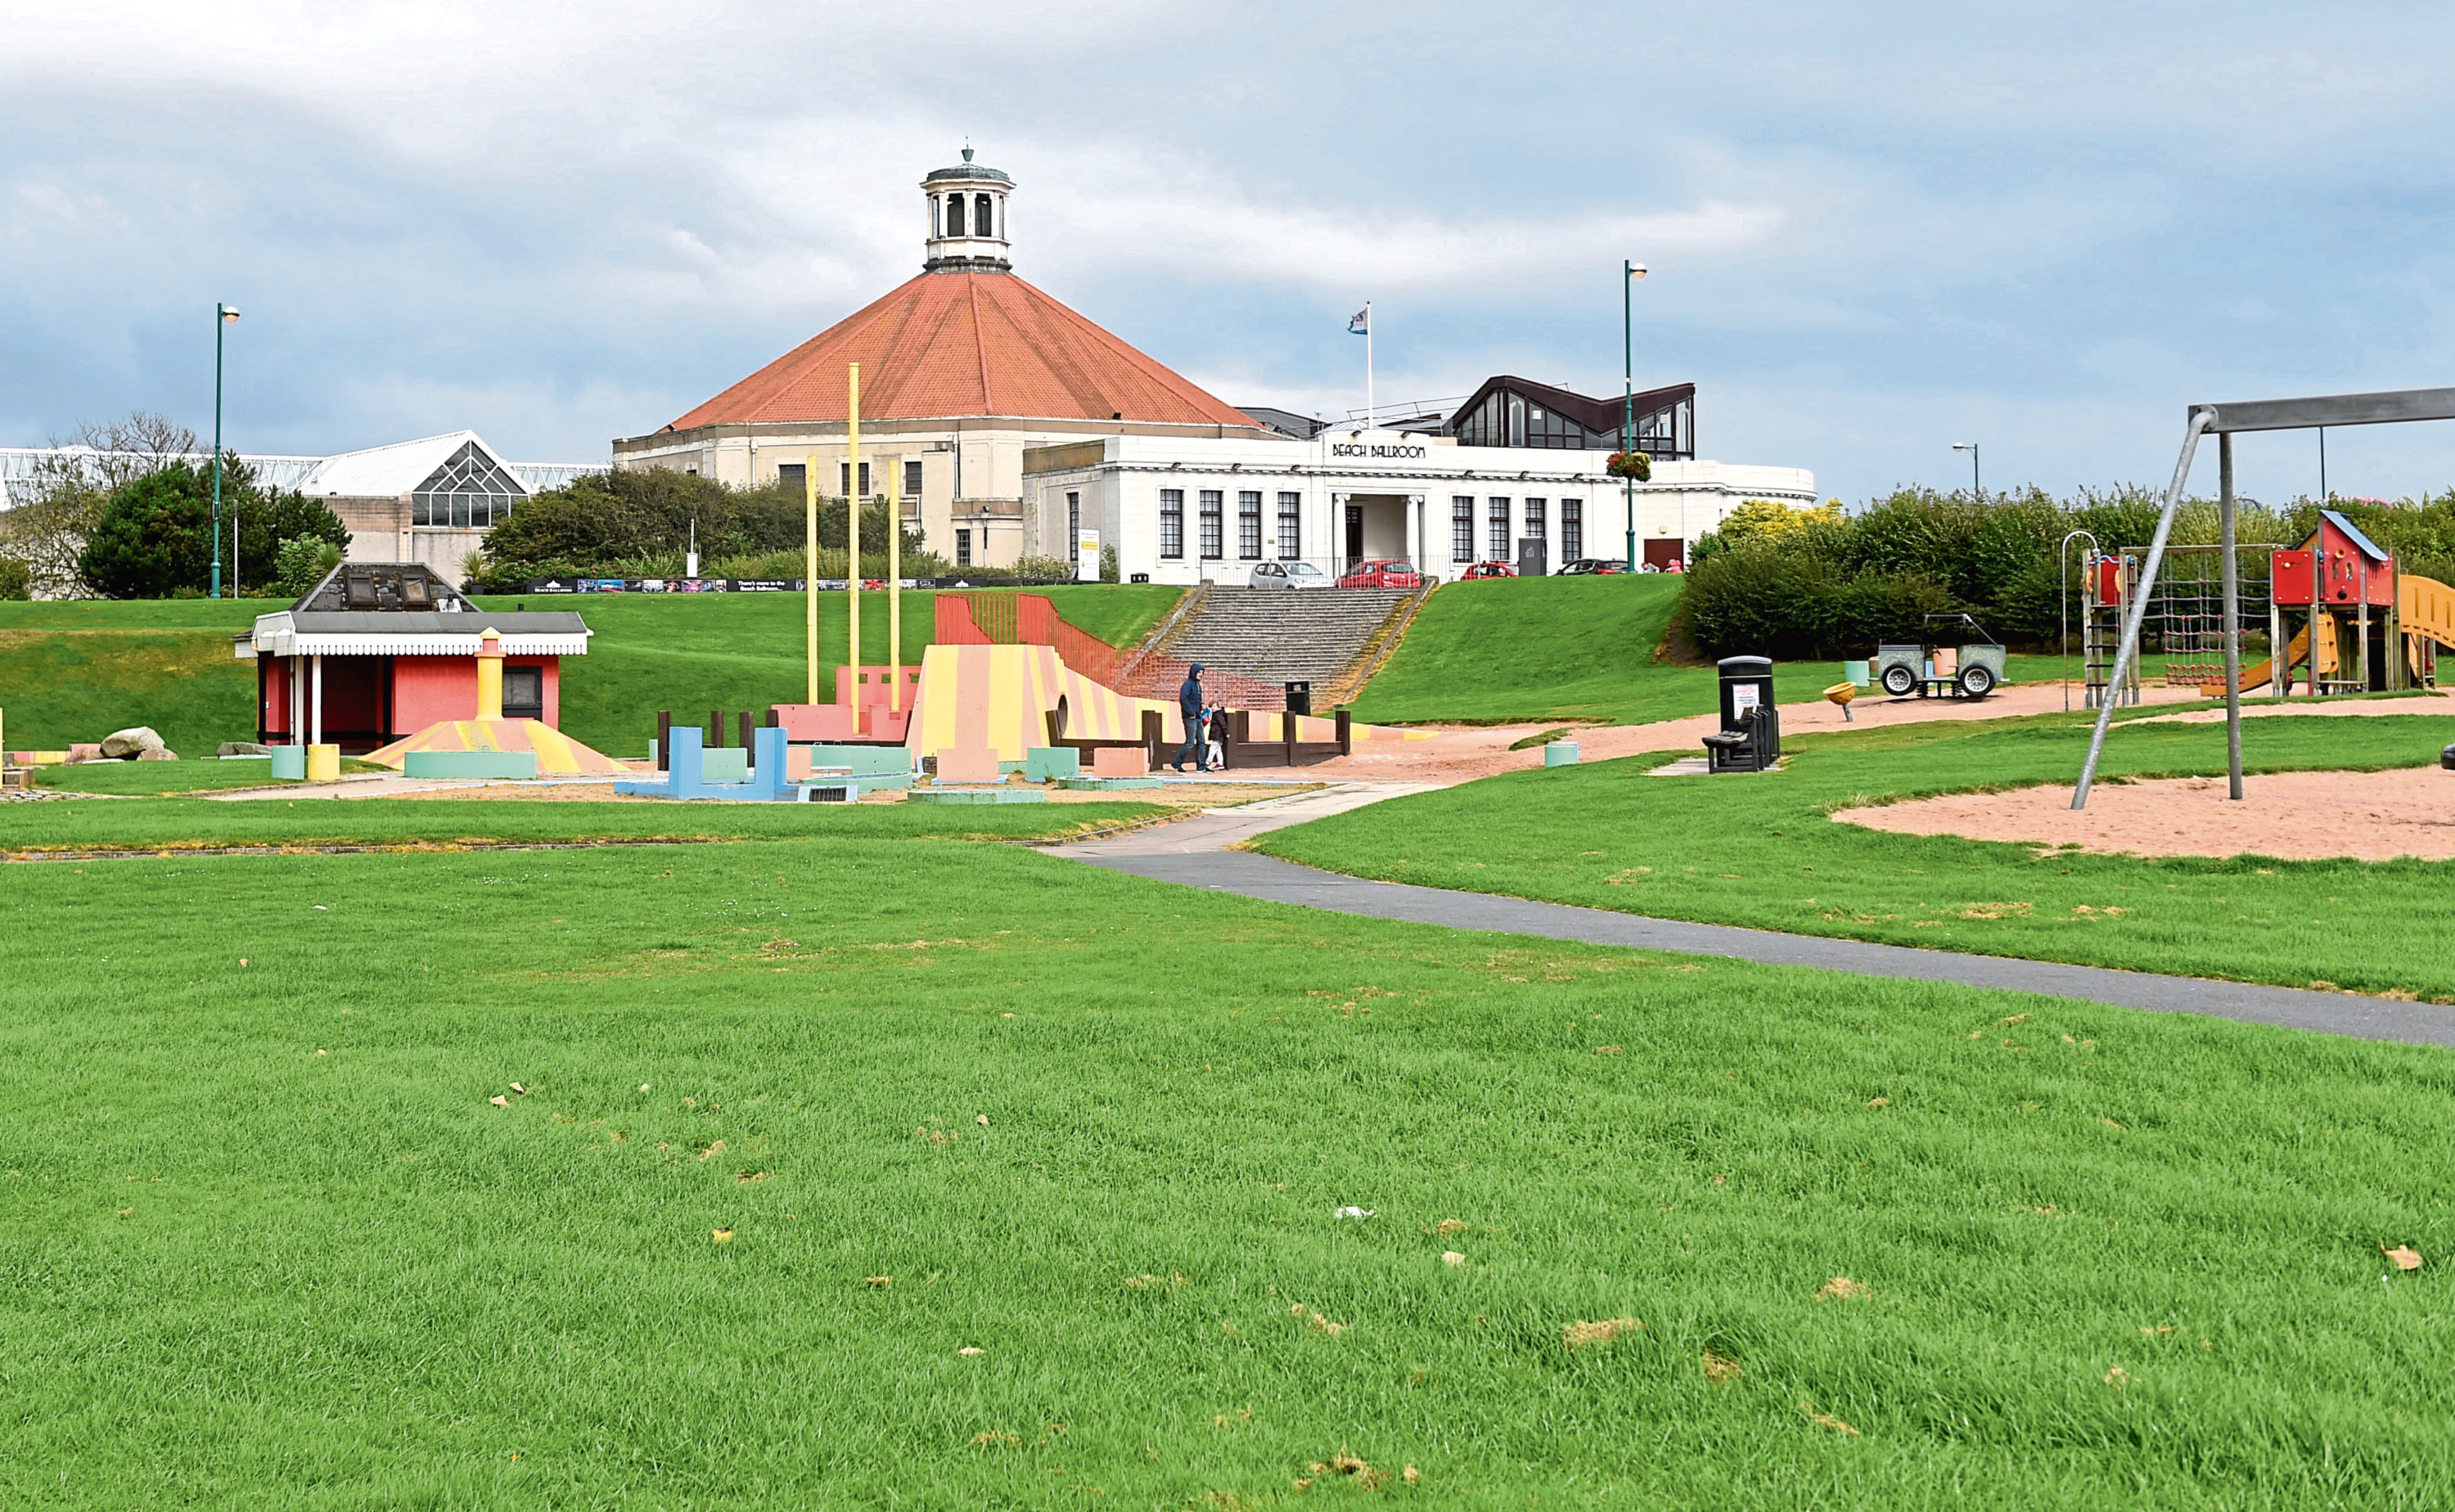 The park at Aberdeen beach is being revamped